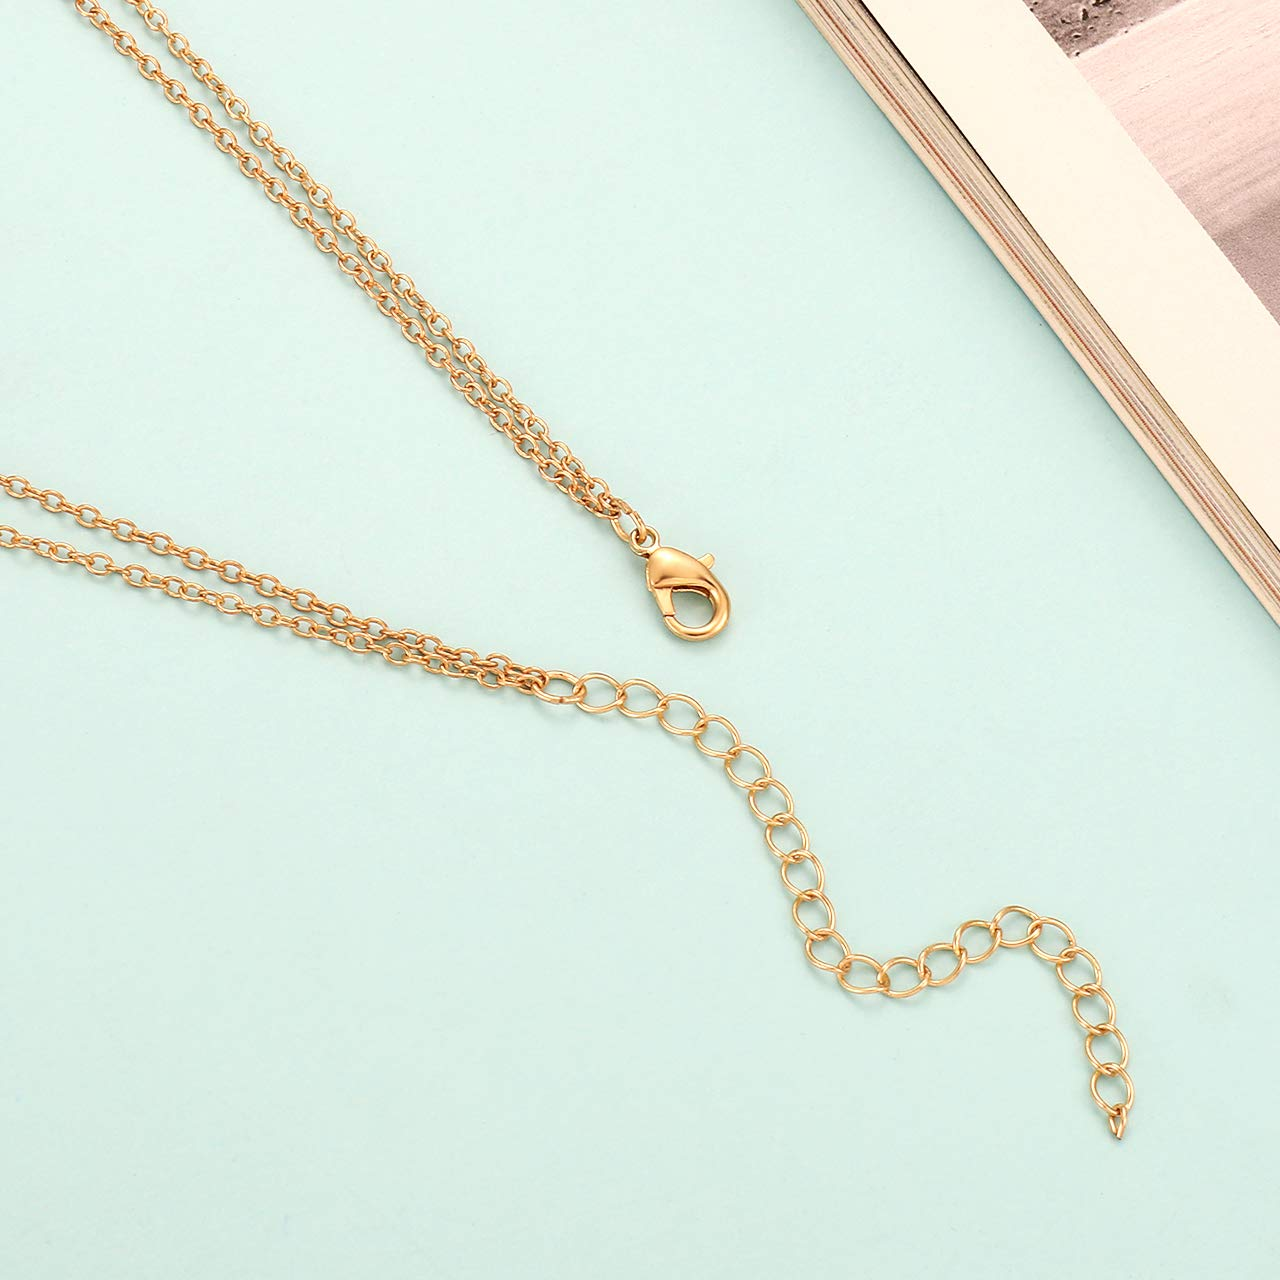 LIAO Jewelry Crystal Flower Collar Necklace for Women Chunky Rhinestone Floral Bib Statement Choker Necklace